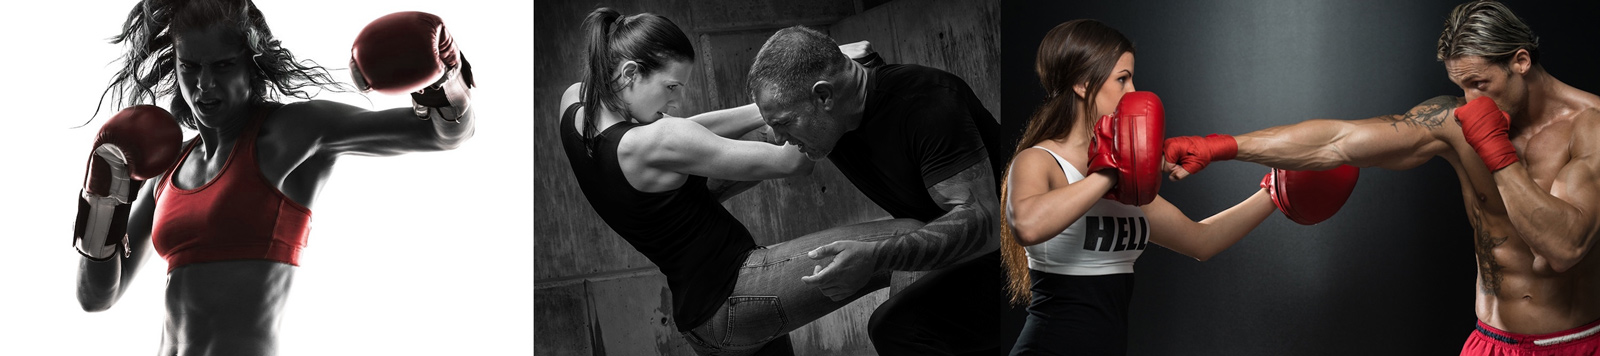 morning kickboxing krav maga memberships